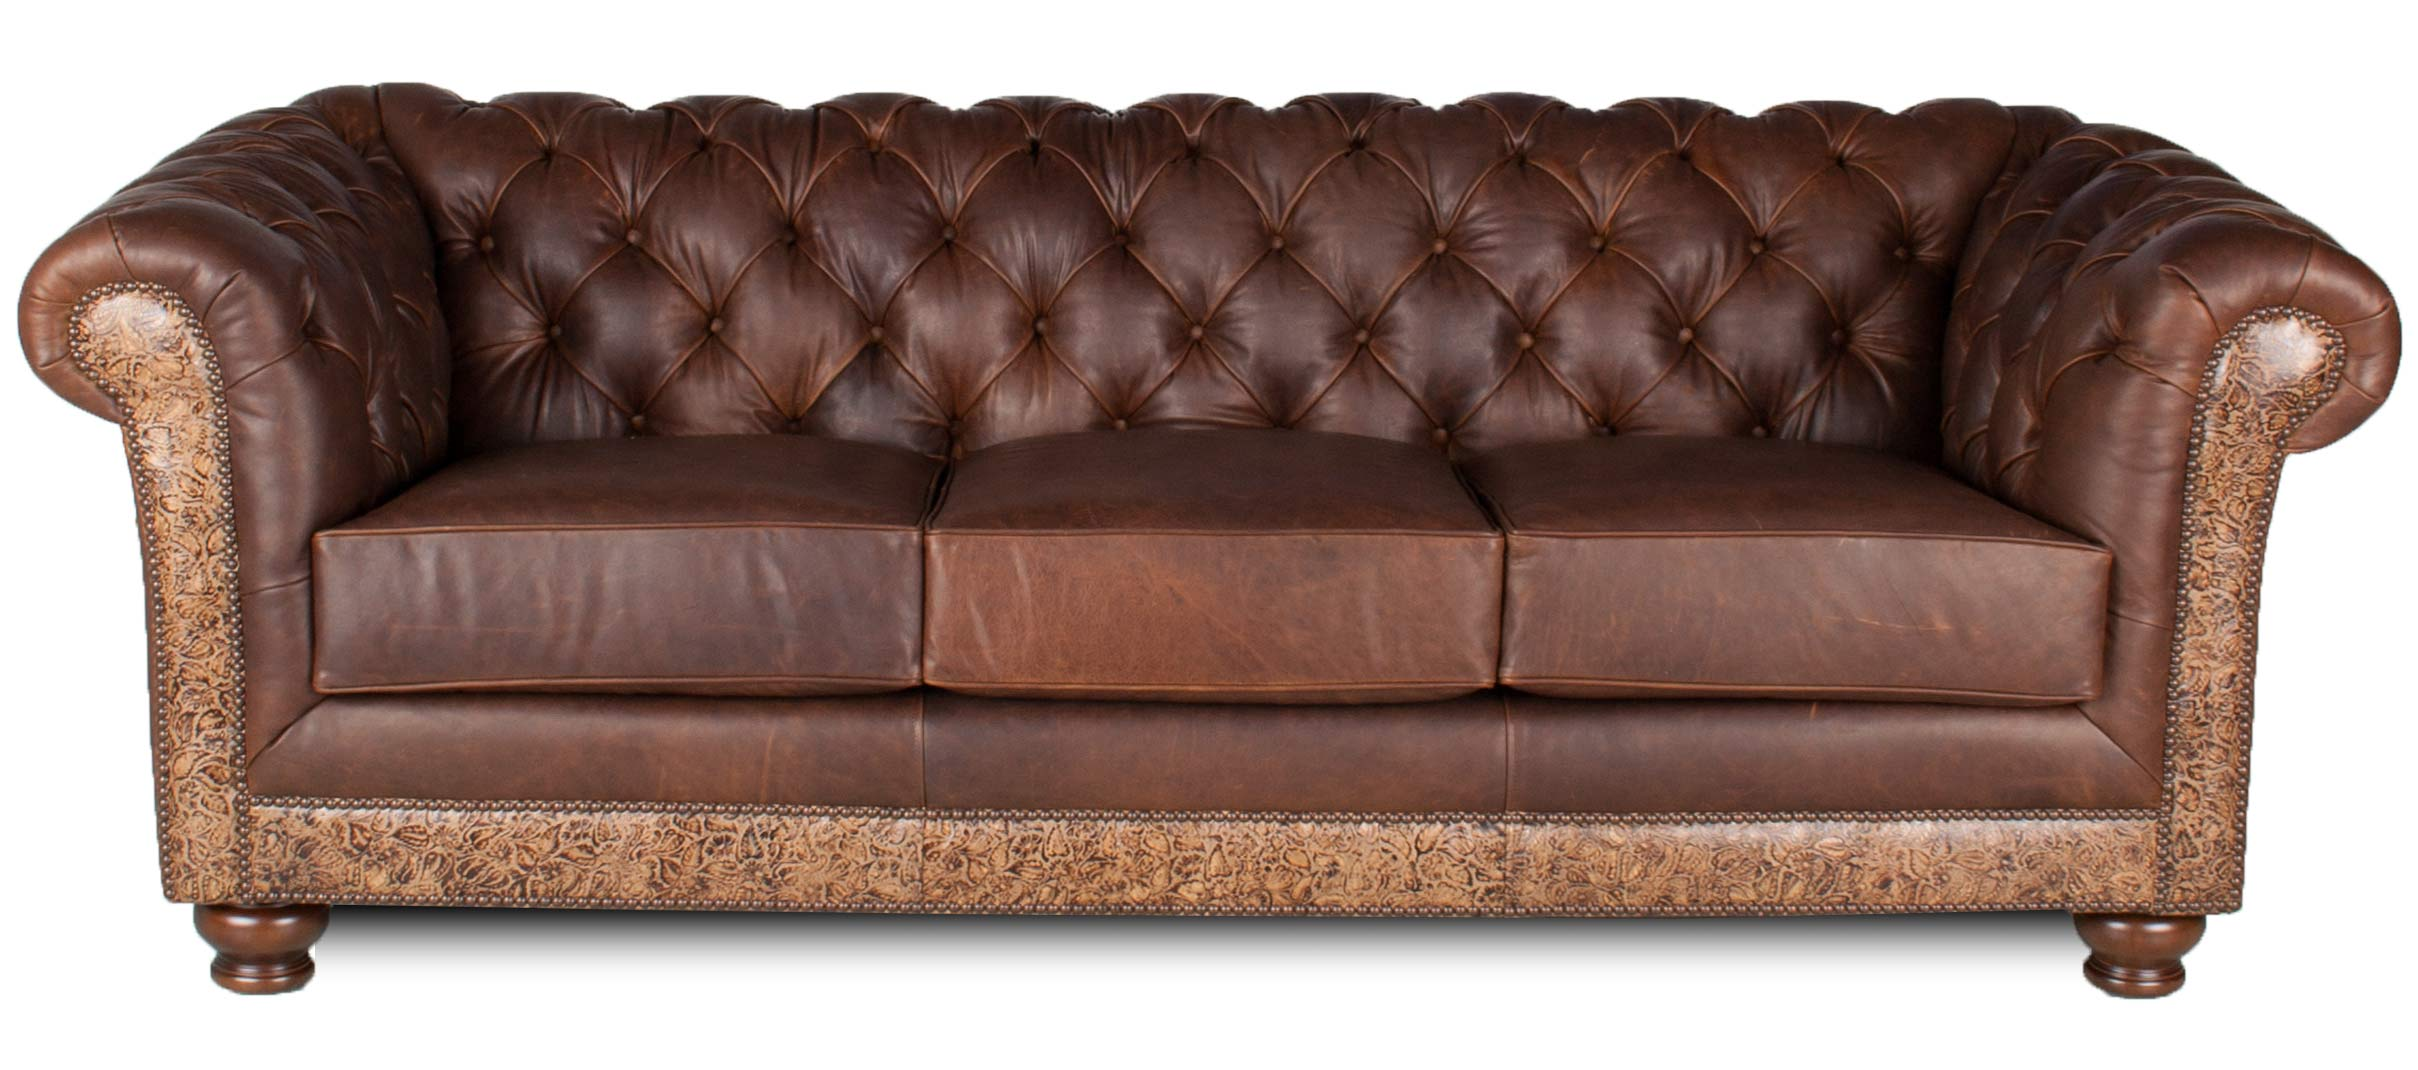 saddle soap leather sofa all modern sleeper sofas how to care for the furniture  yonohomedesign